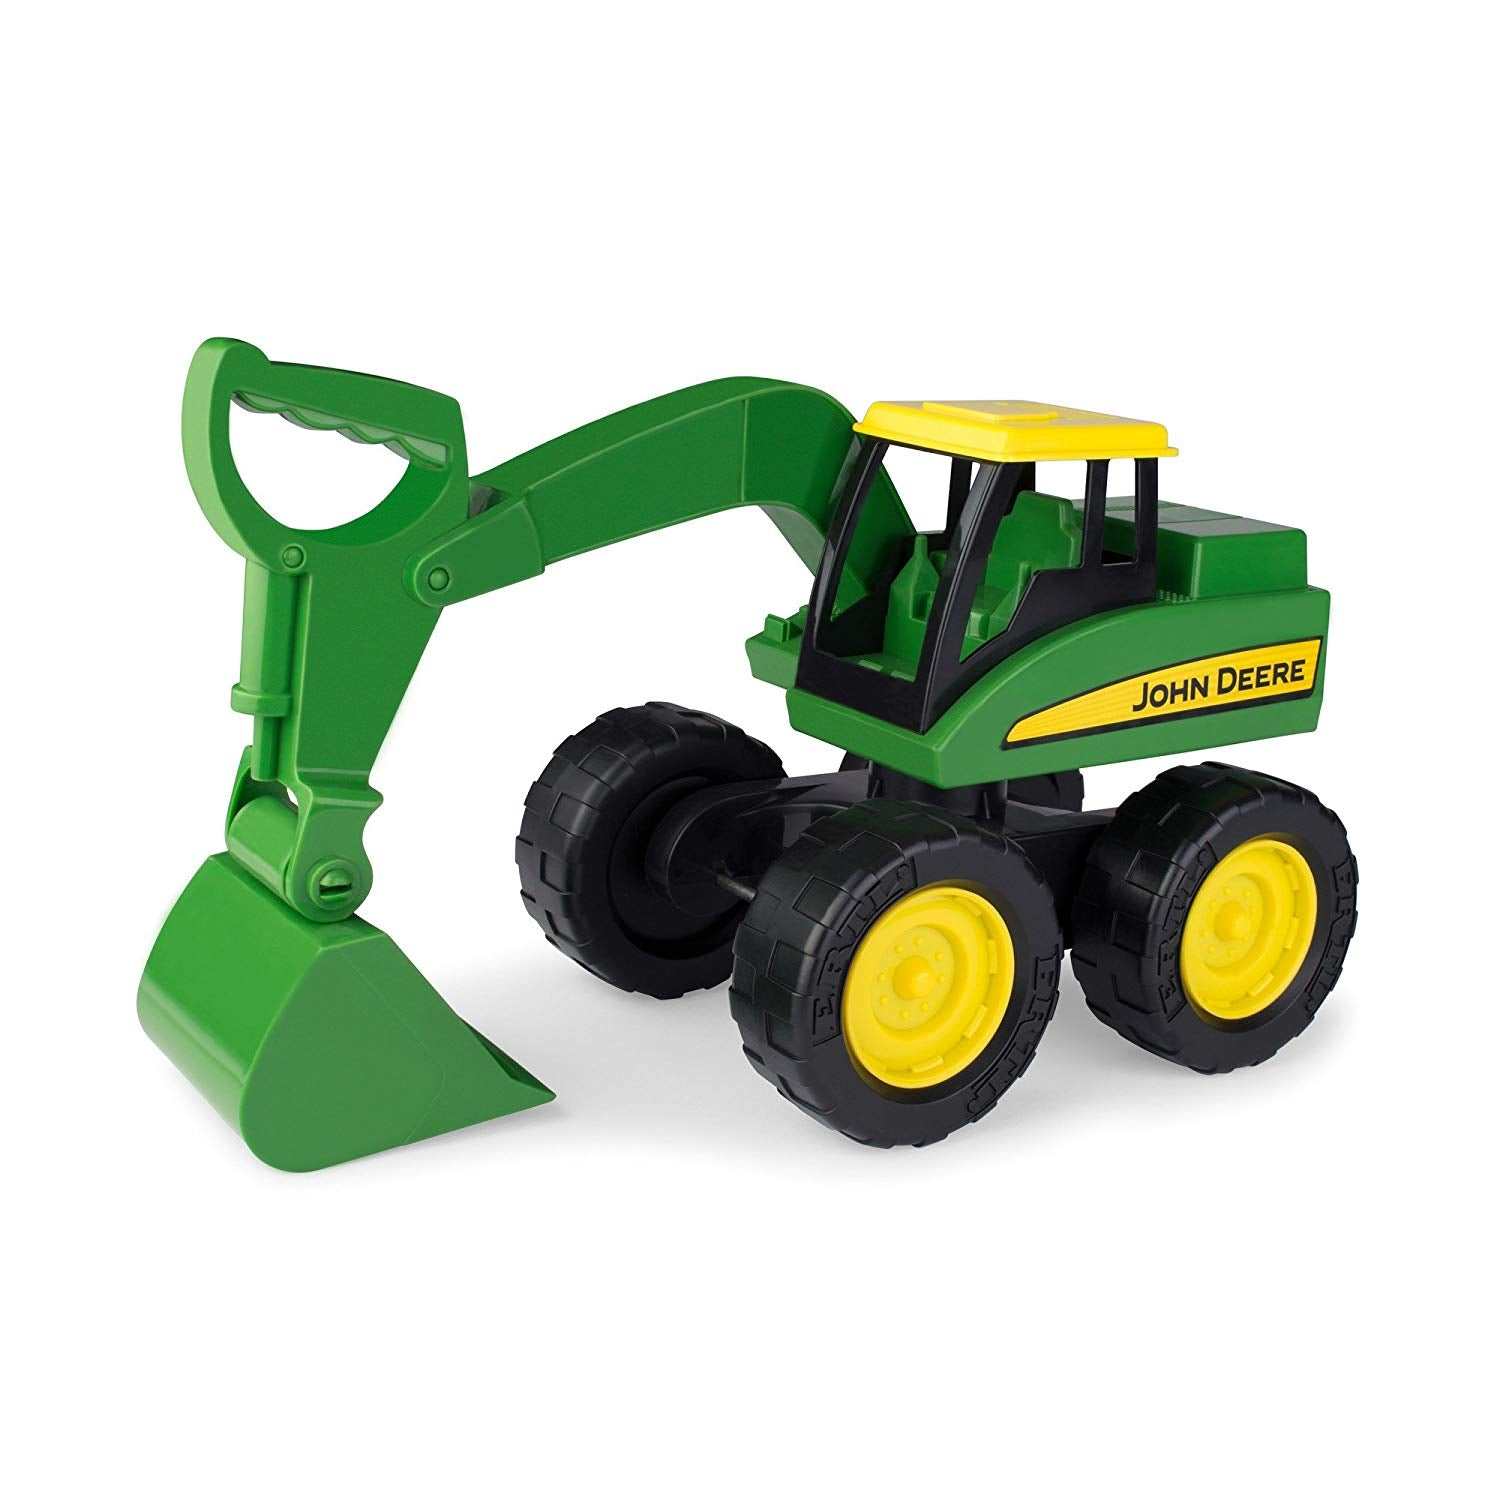 John Deere Big Scoop Excavator  Indoor and Outdoor Farm Vehicle Toy  Suitable From 3 Years